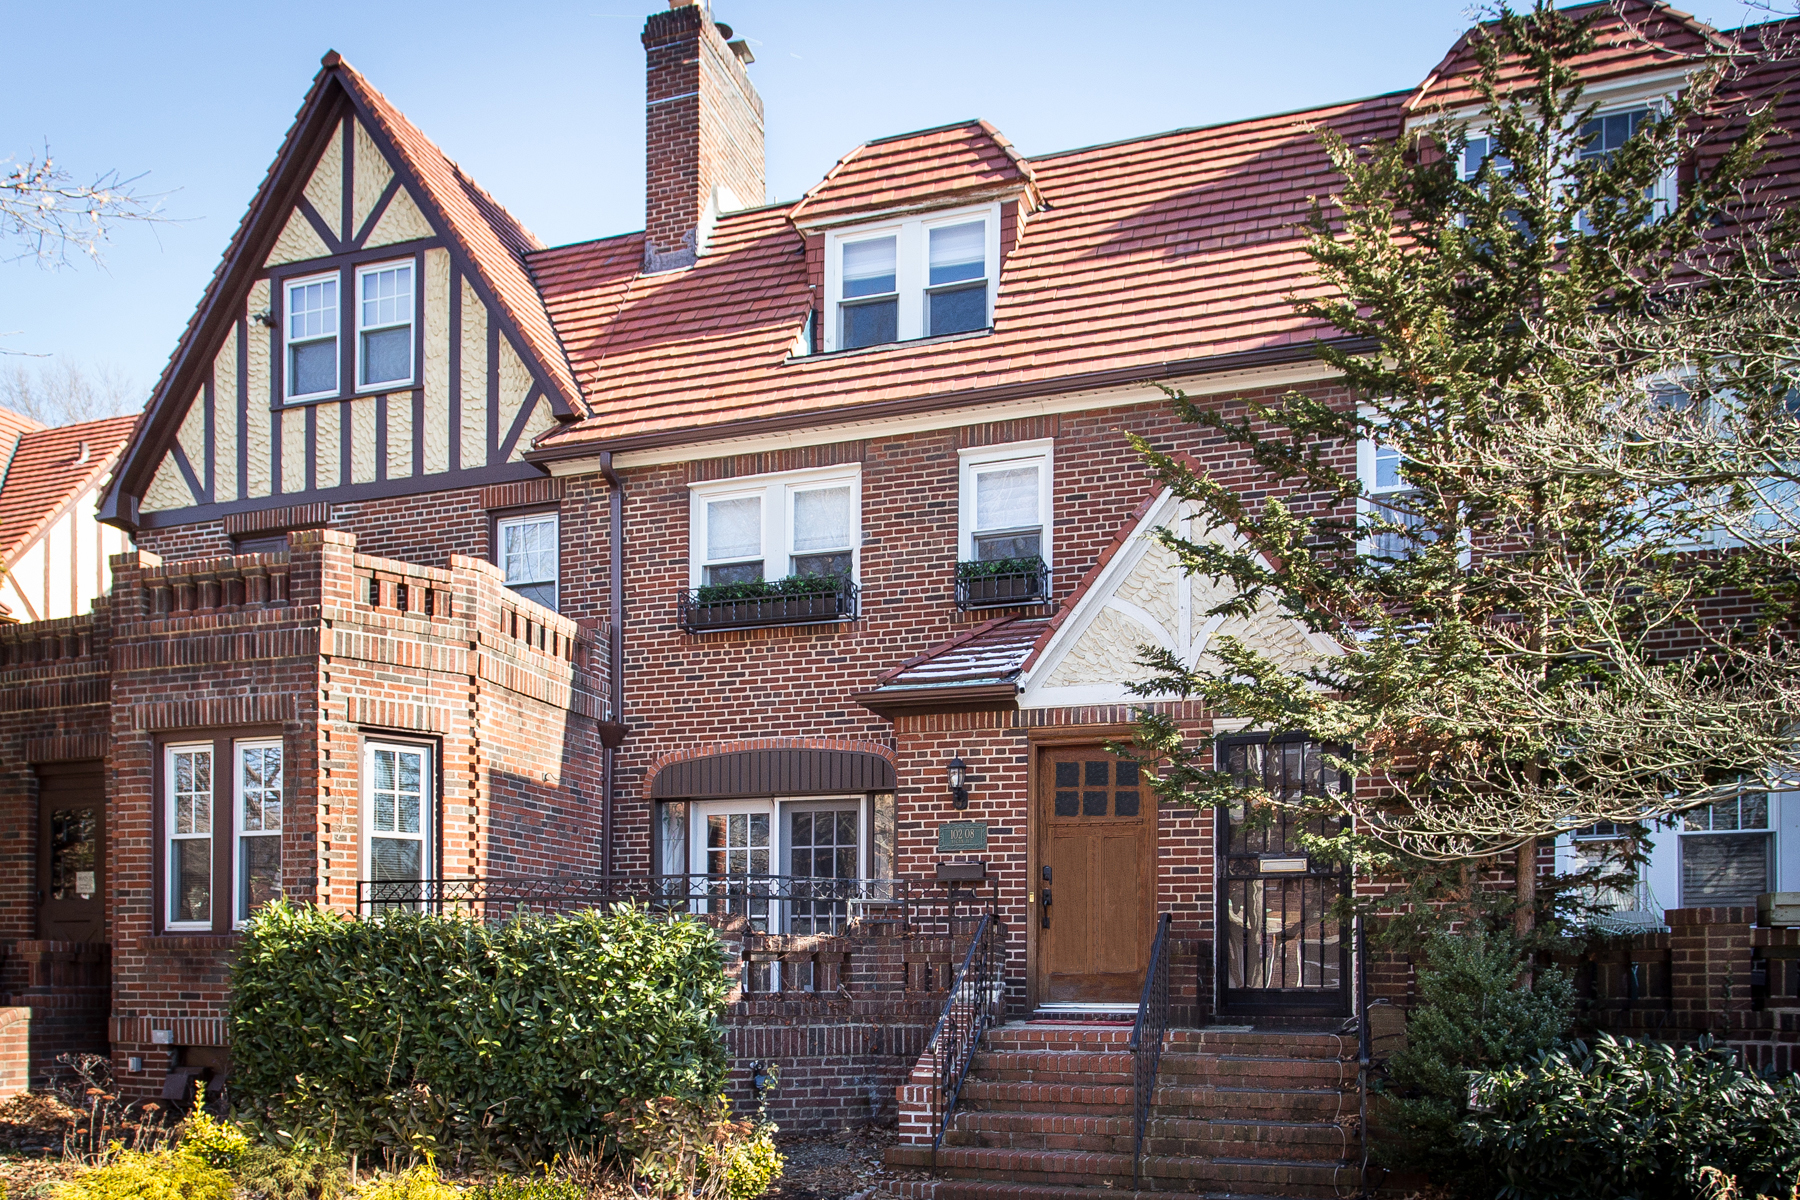 """townhouses for Active at """"ENGLISH COUNTRY TOWNHOUSE"""" 102-08 Ascan Avenue, Forest Hills, New York 11375 United States"""